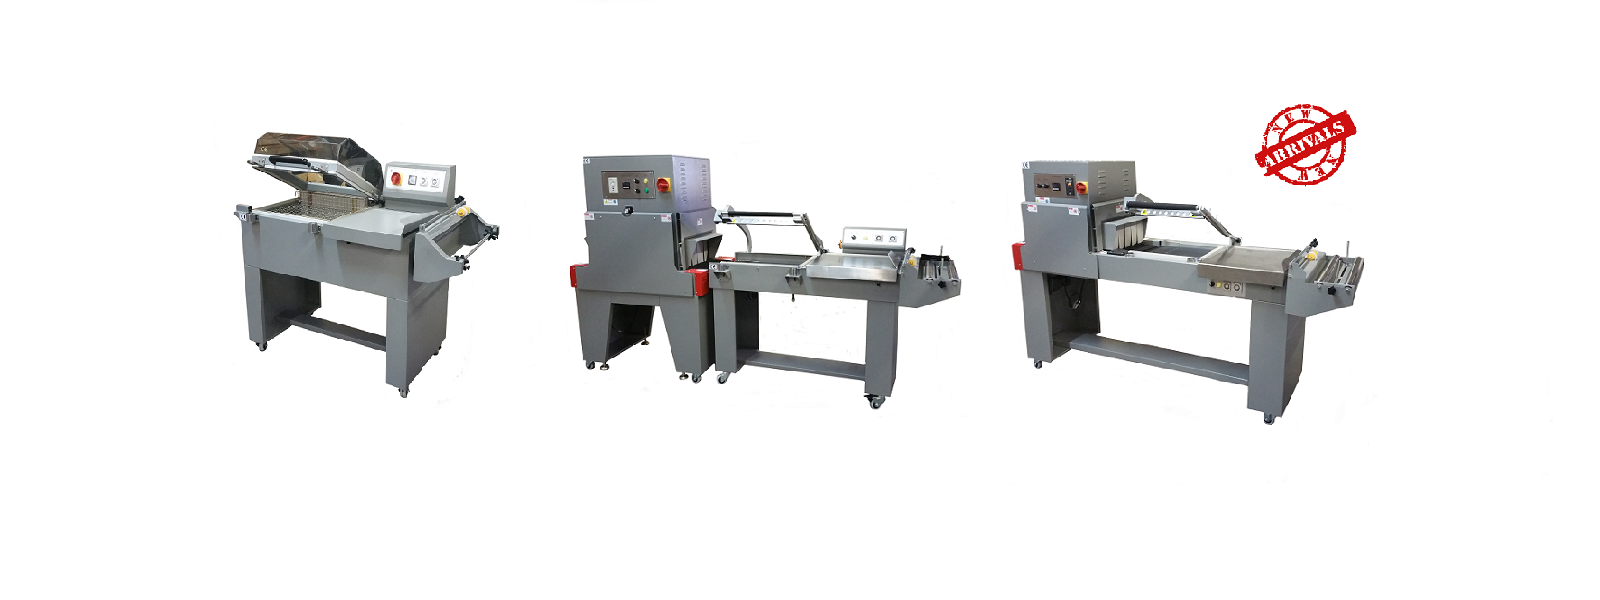 Shrink Wrapping Machines - Impak L Sealers